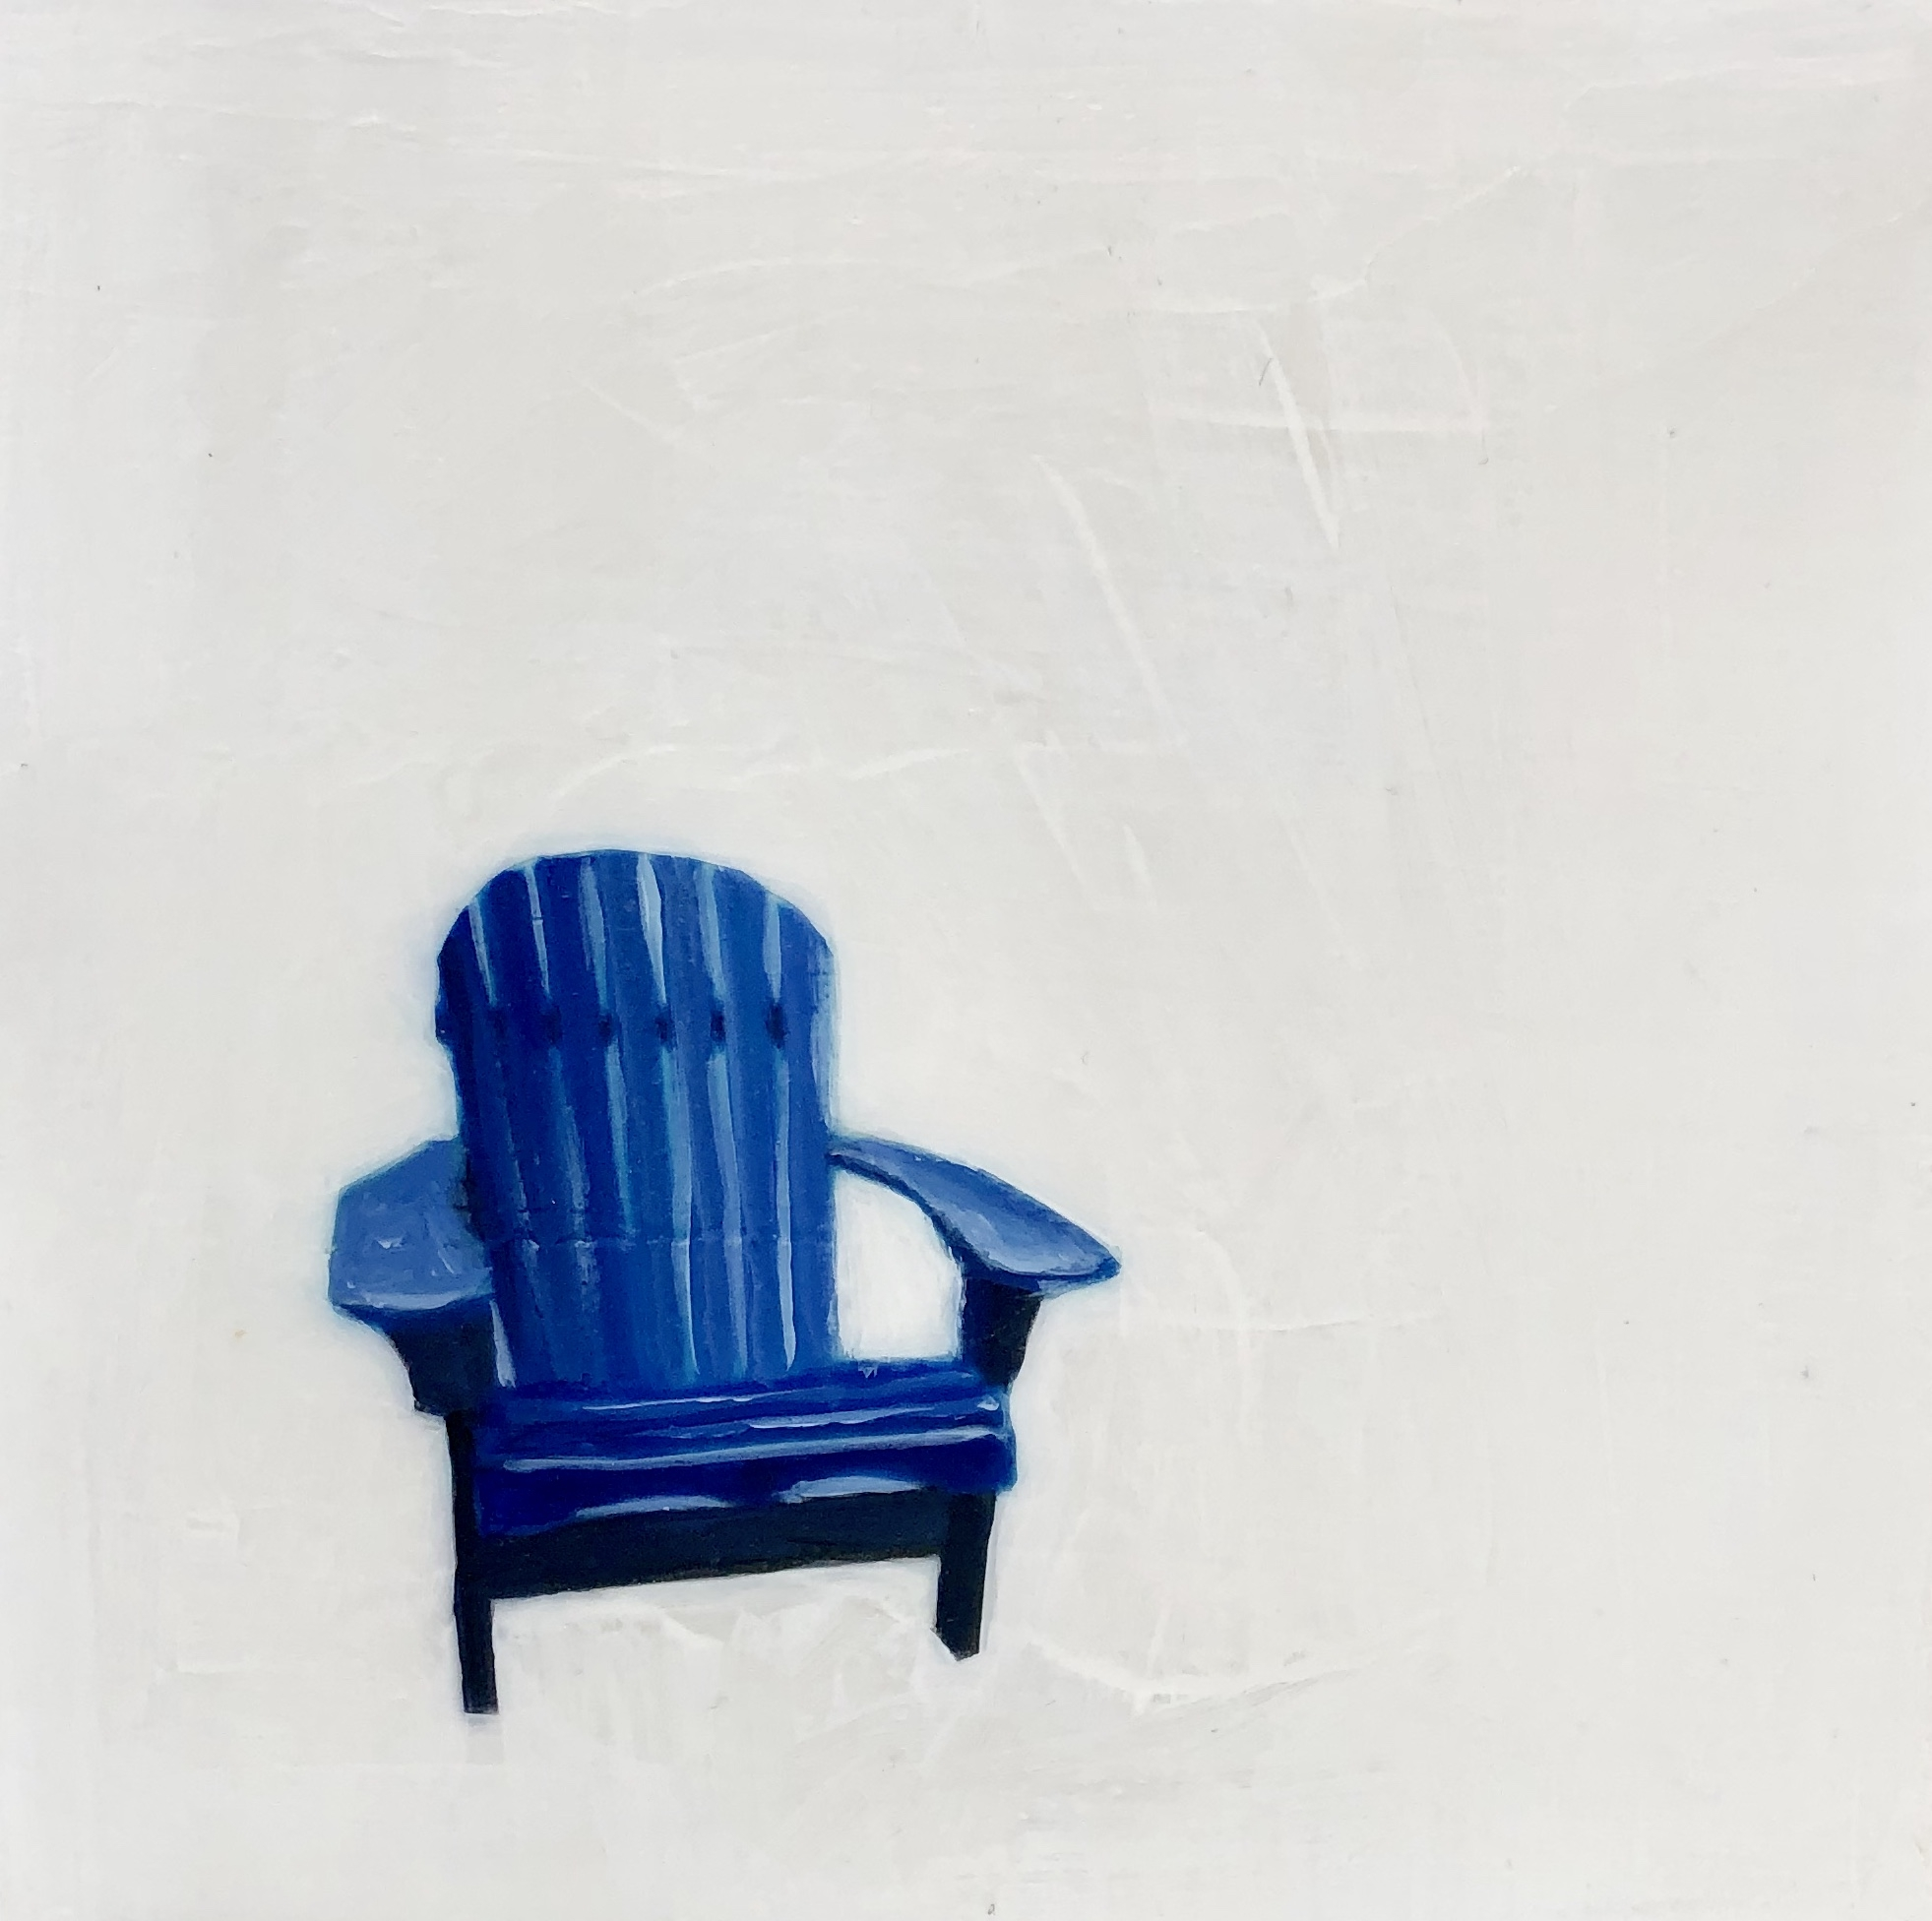 Blue Deck Chair  by EM Vincent